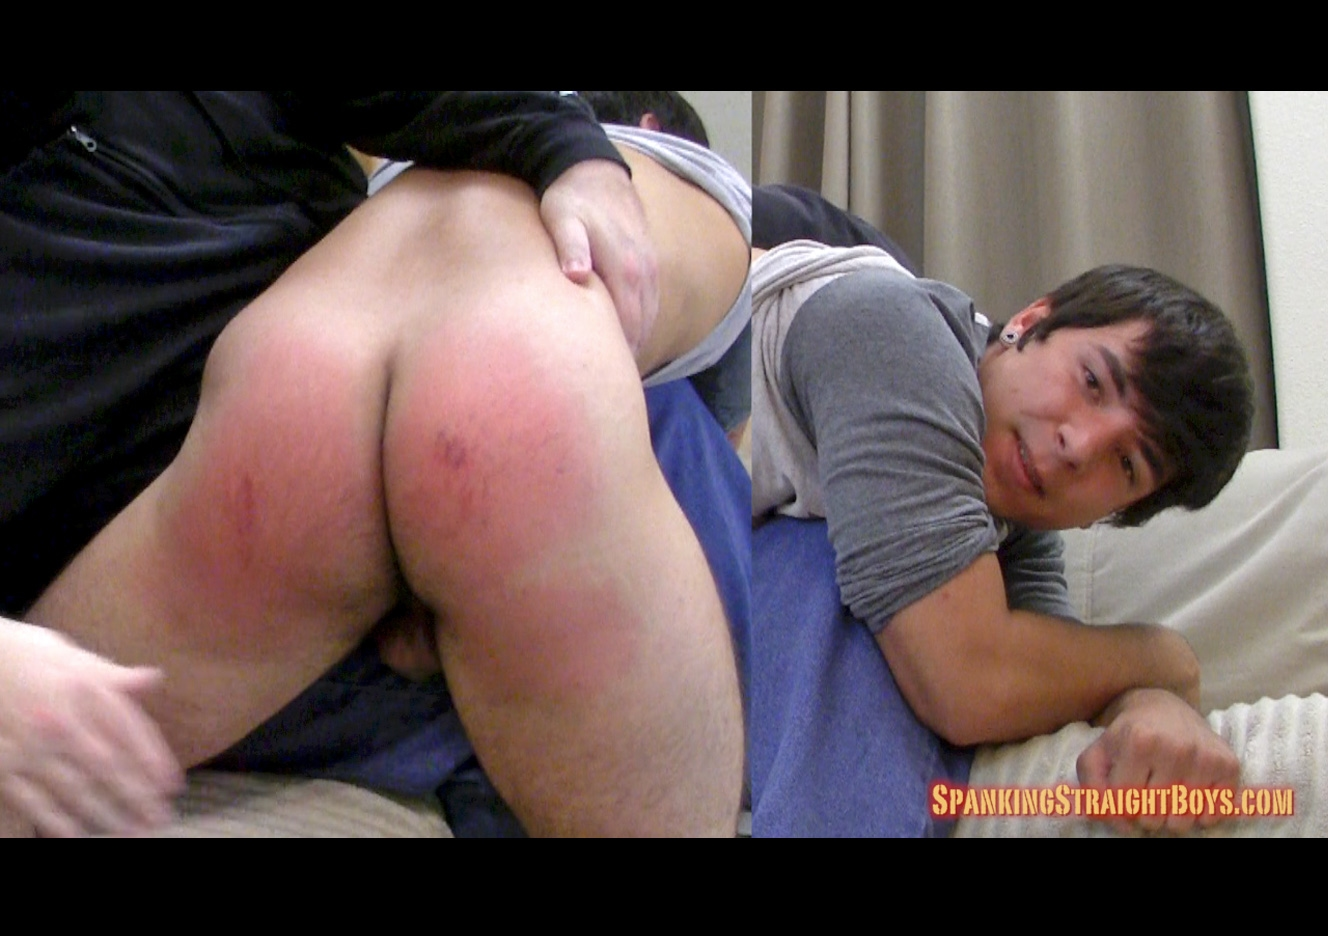 content/150918101-camerons-first-spanking/0.jpg